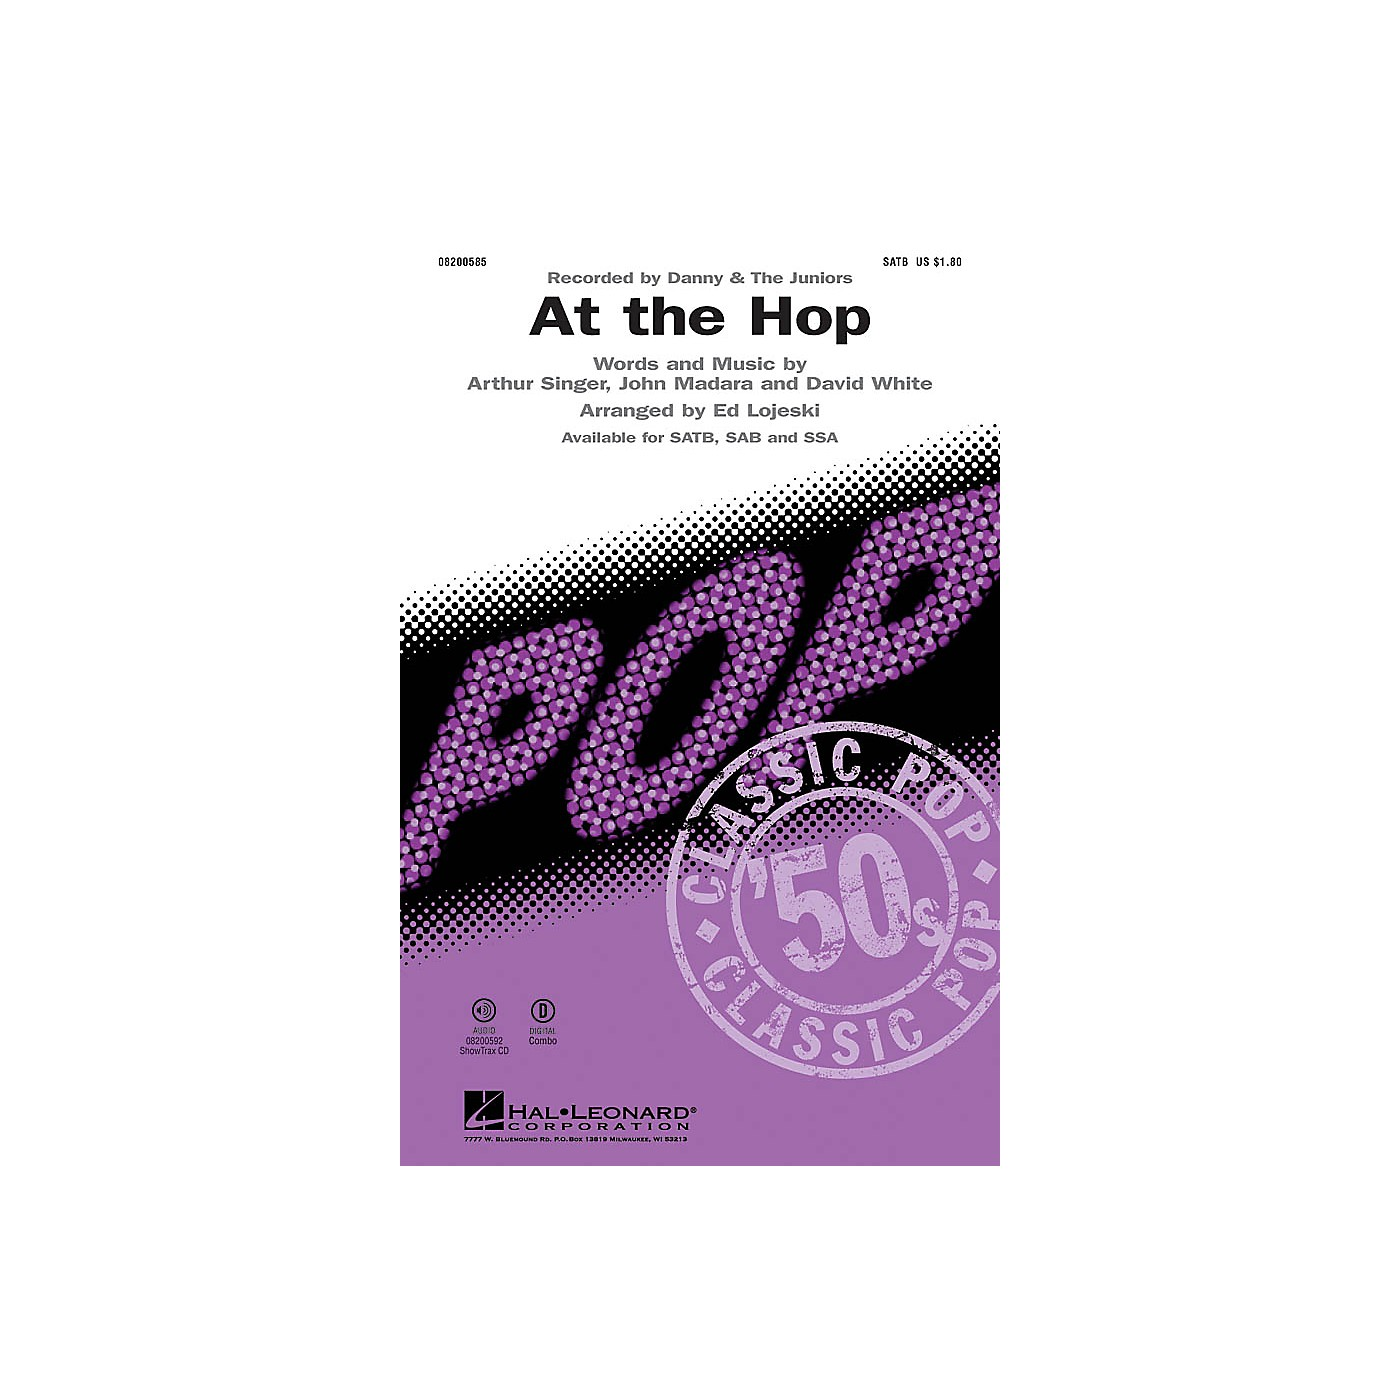 Hal Leonard At the Hop (SATB) SATB by Danny and the Juniors arranged by Ed Lojeski thumbnail